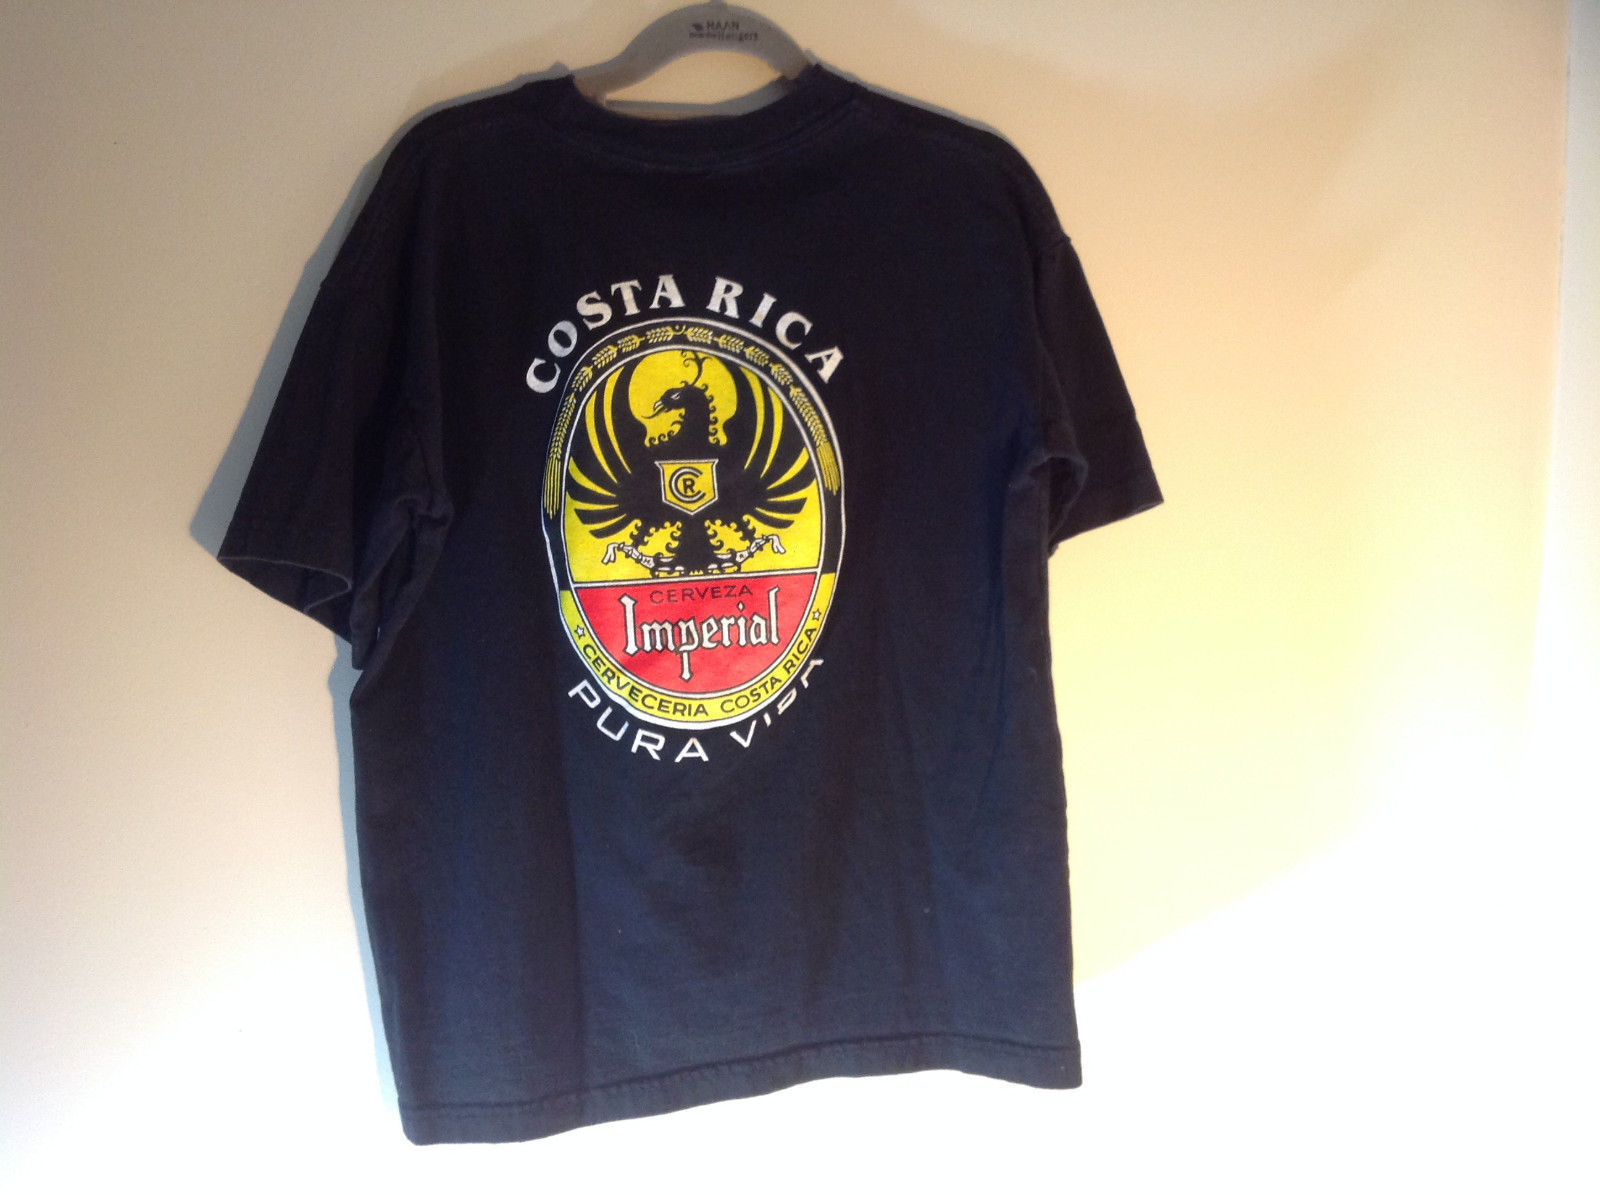 Black Short Sleeve Graphic T-shirt with White Emblem on Front Chest Size Medium